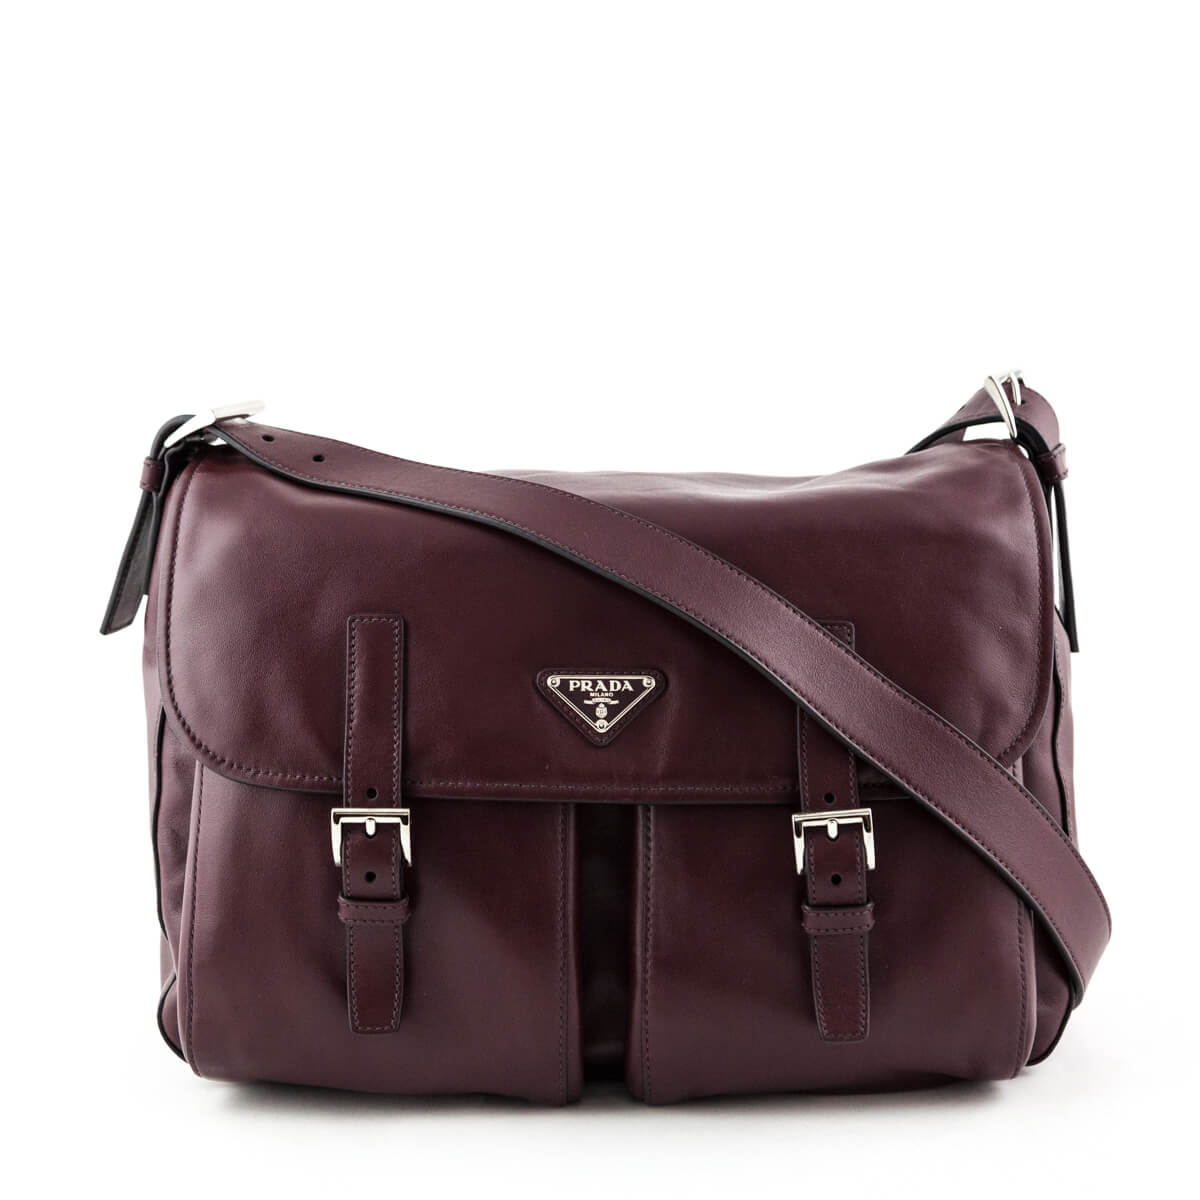 f3a5b30827 Prada Granato Soft Calfskin Pattina Messenger Bag - LOVE that BAG -  Preowned Authentic Designer Handbags ...